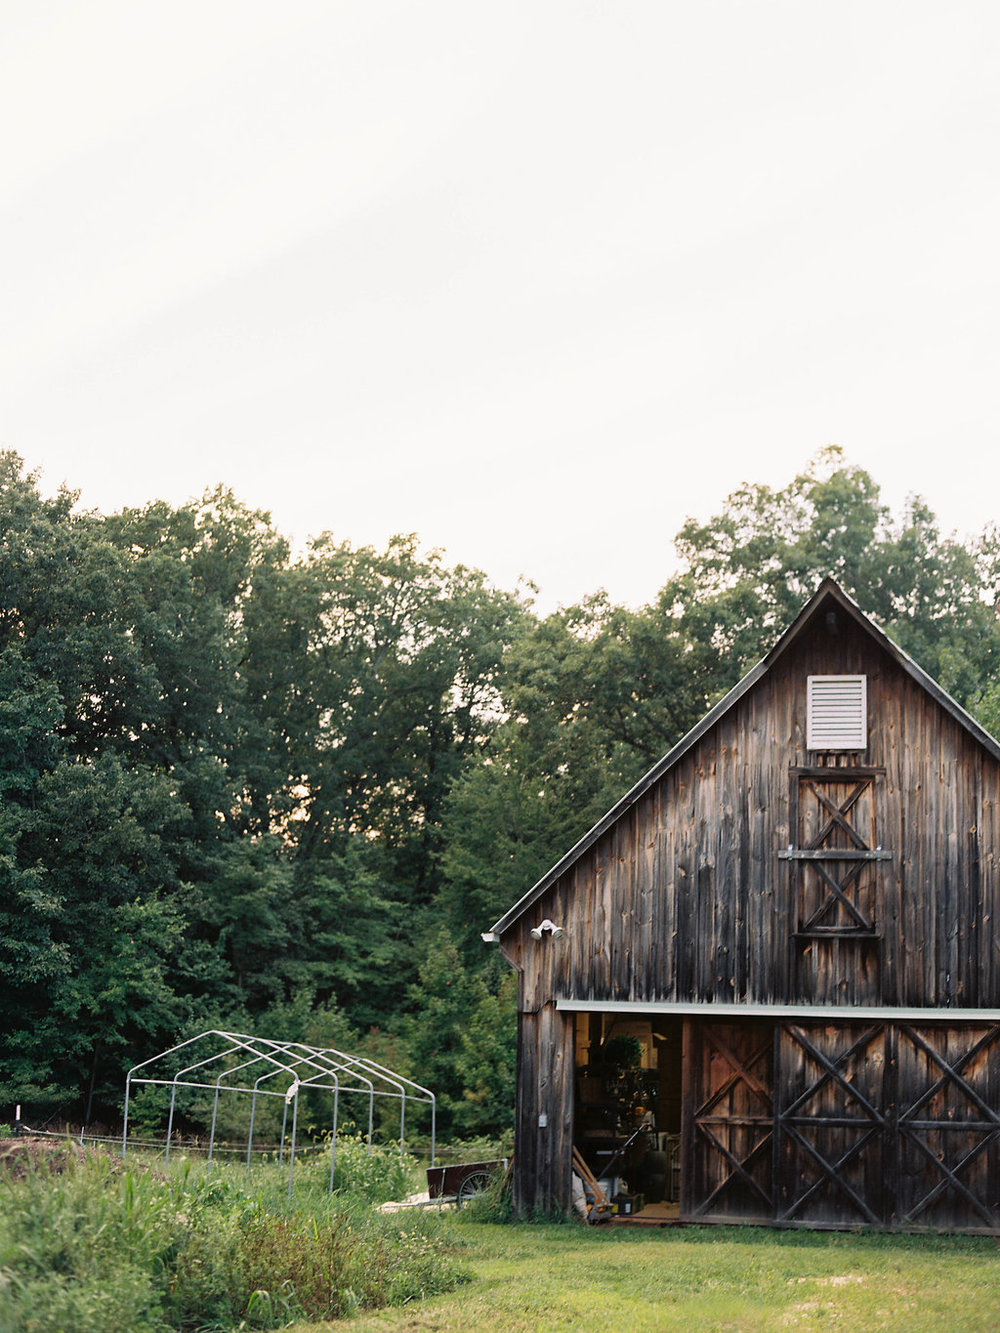 Photographs by Renee Hollingshead, Styling and Farmers of Loblolly Farm